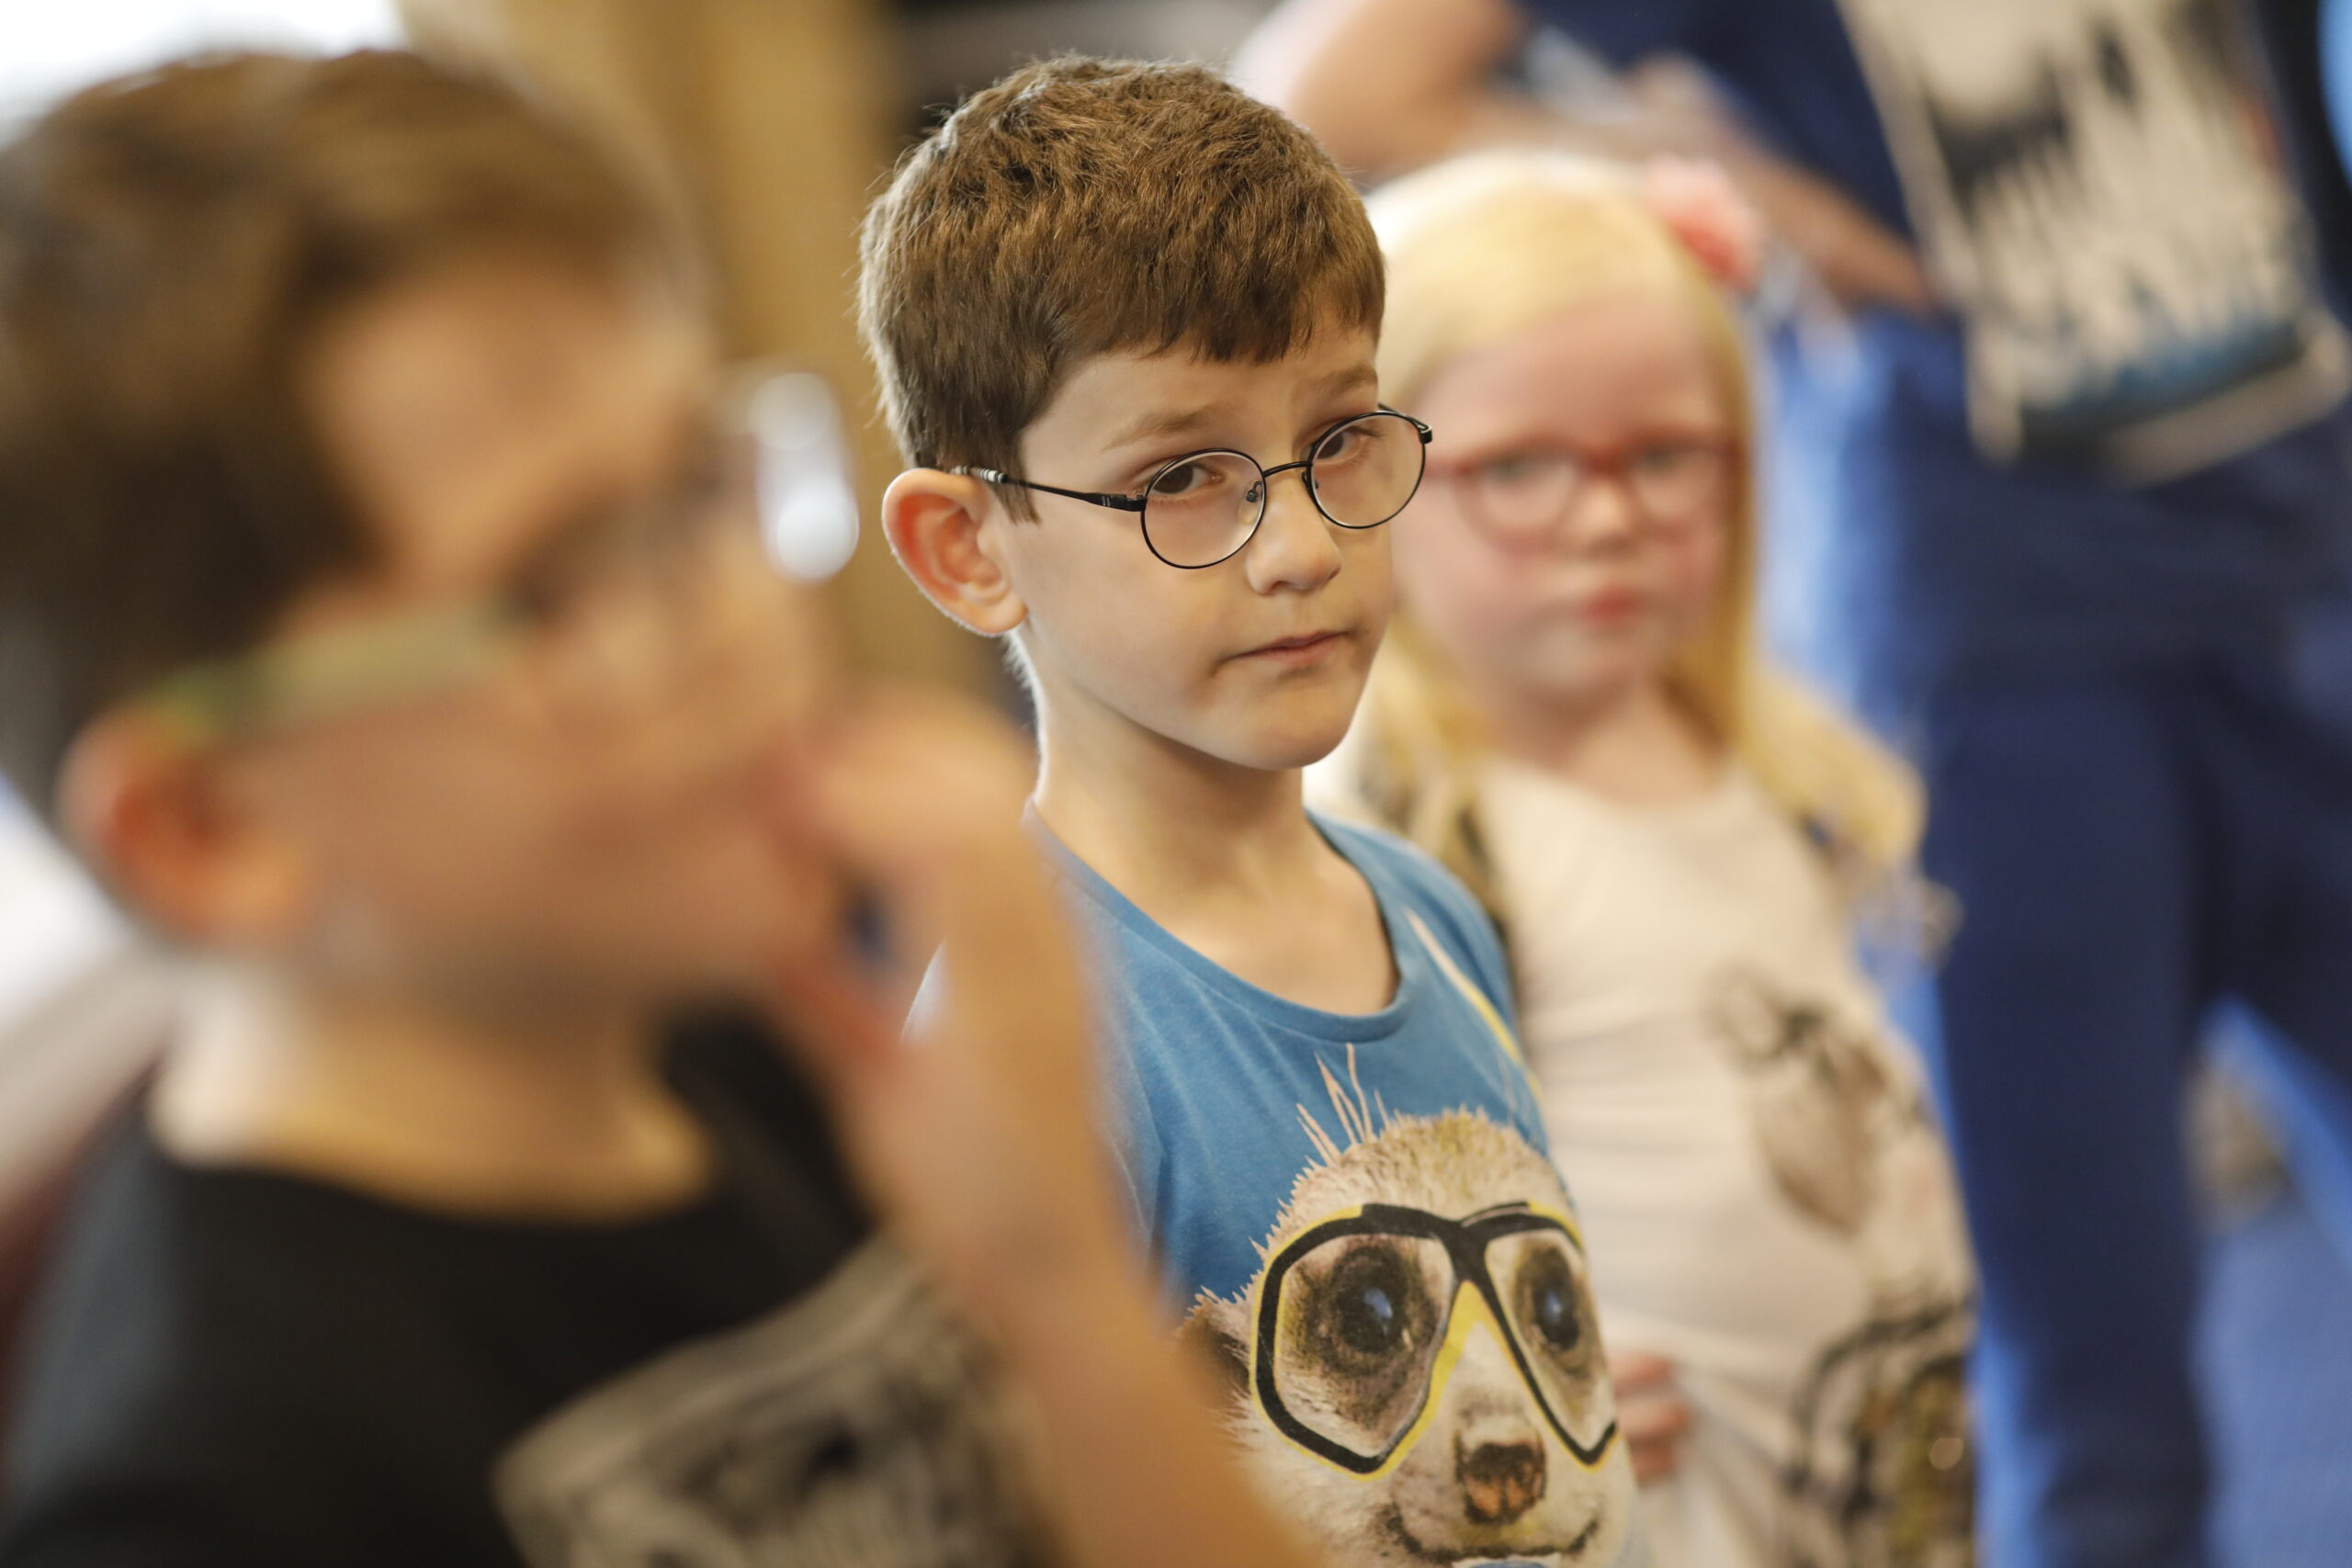 Children wearing glasses stand together.